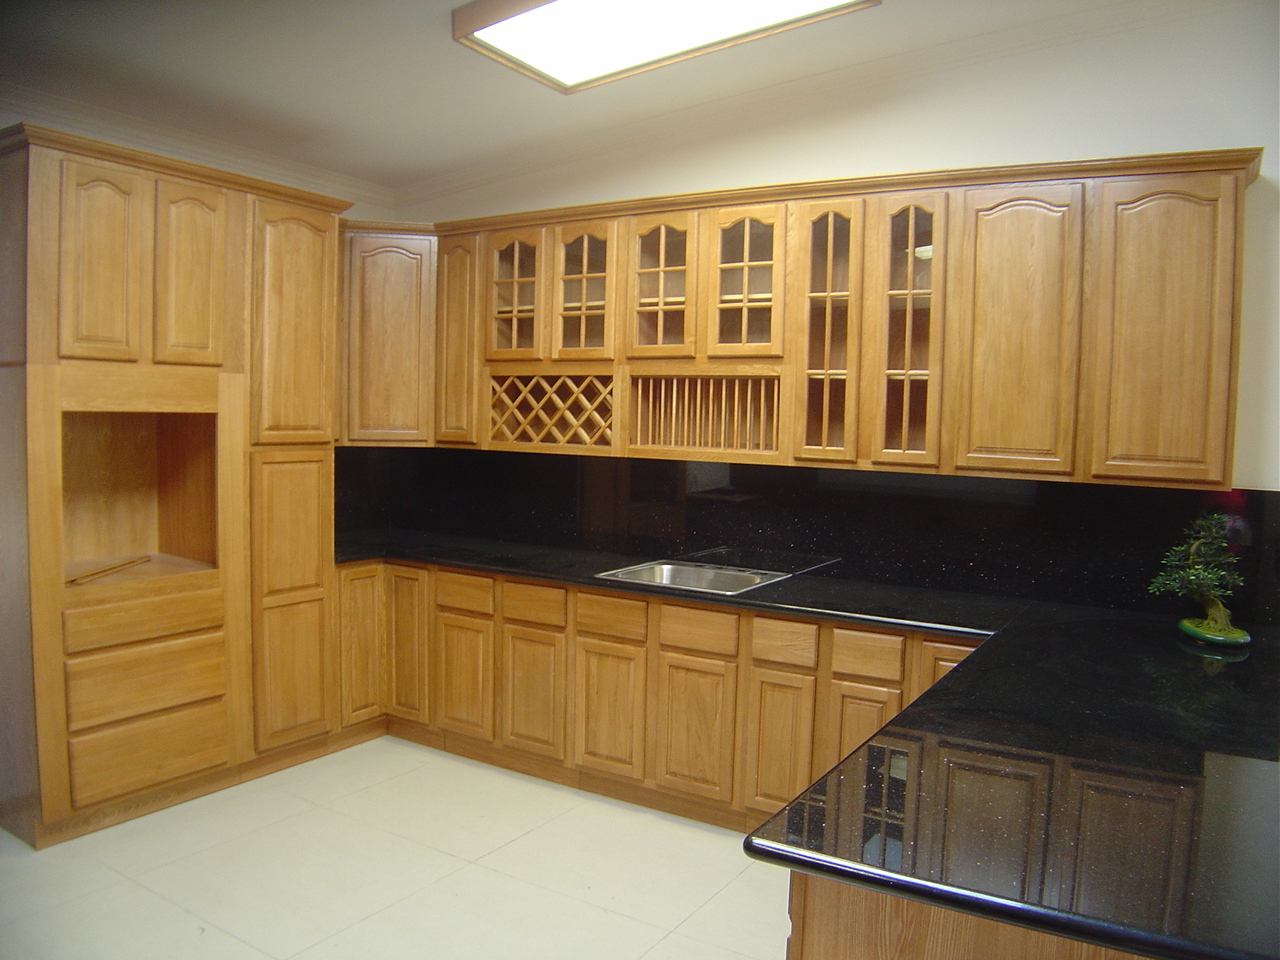 kitchen cabinets design and ideas photo - 5